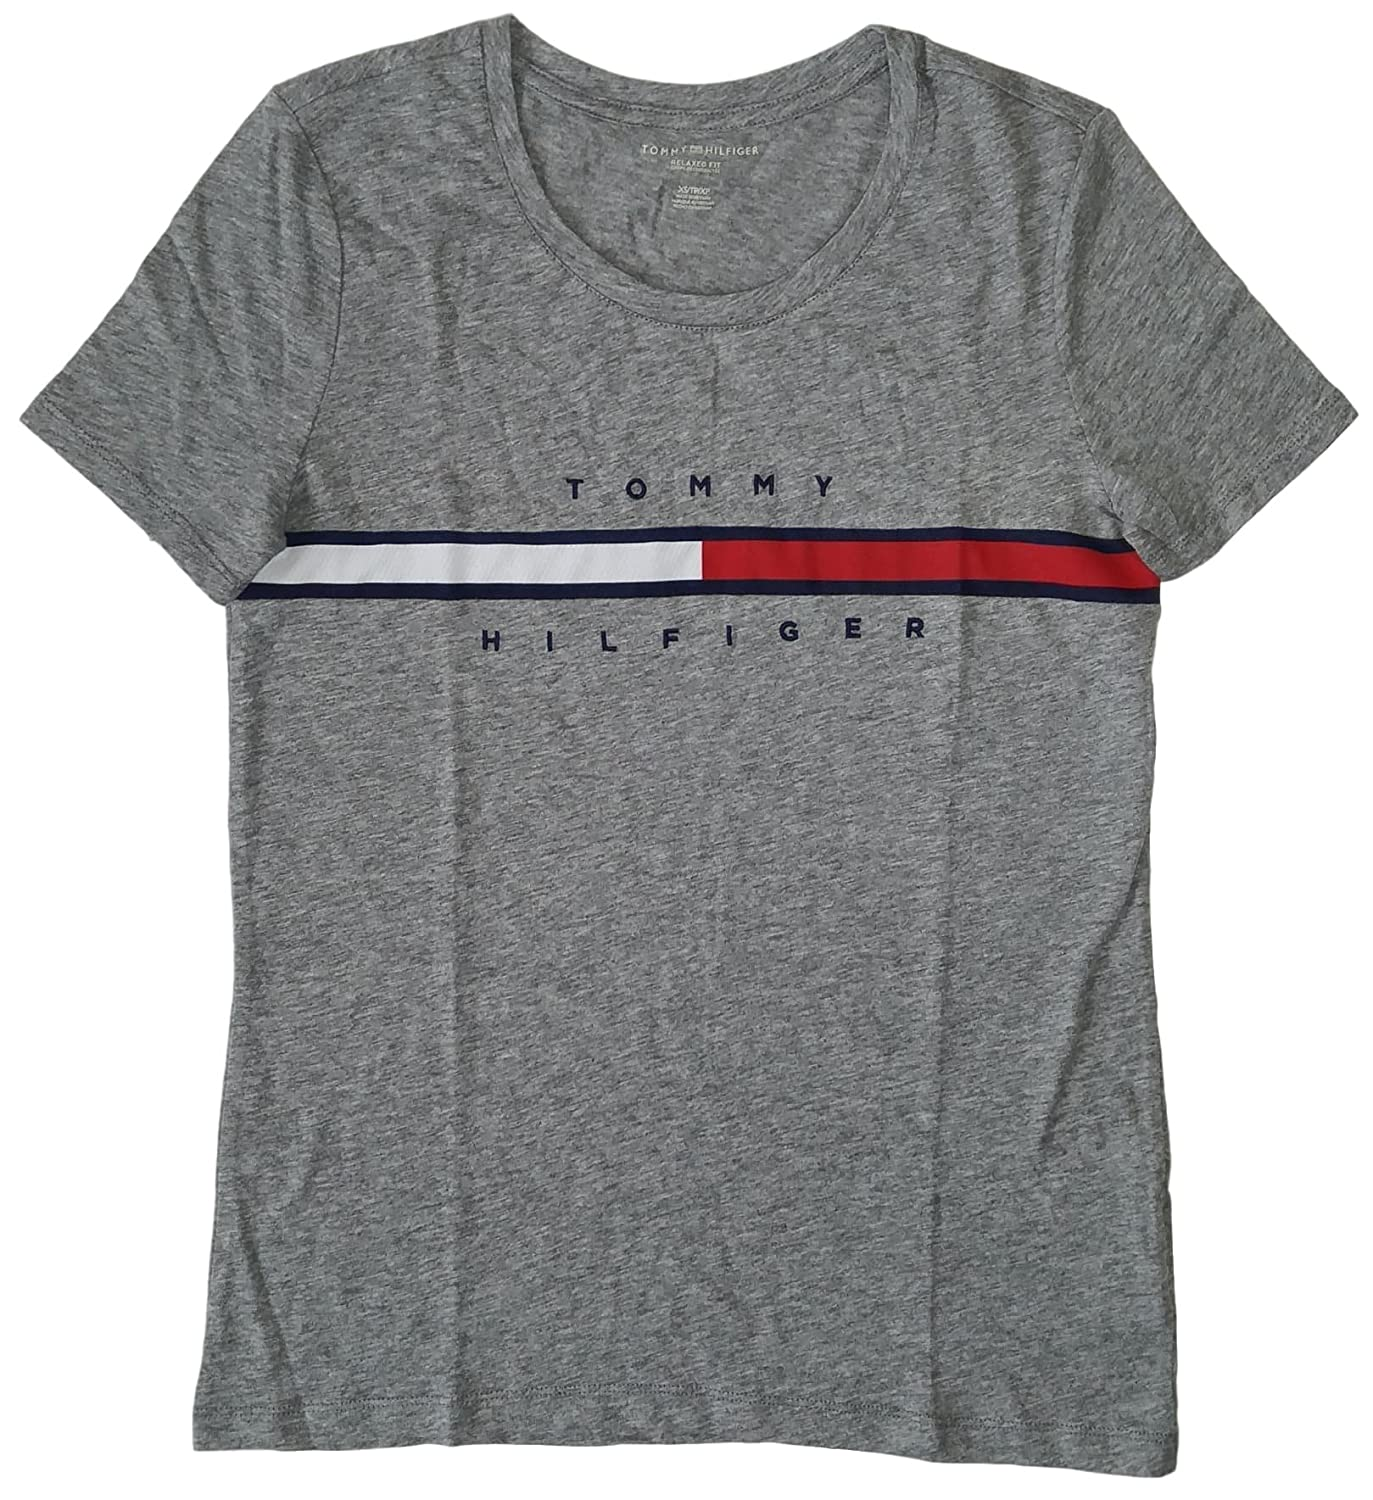 432b24e7 Tommy Hilfiger Women's Big Logo Line T-Shirt: Amazon.ca: Clothing &  Accessories